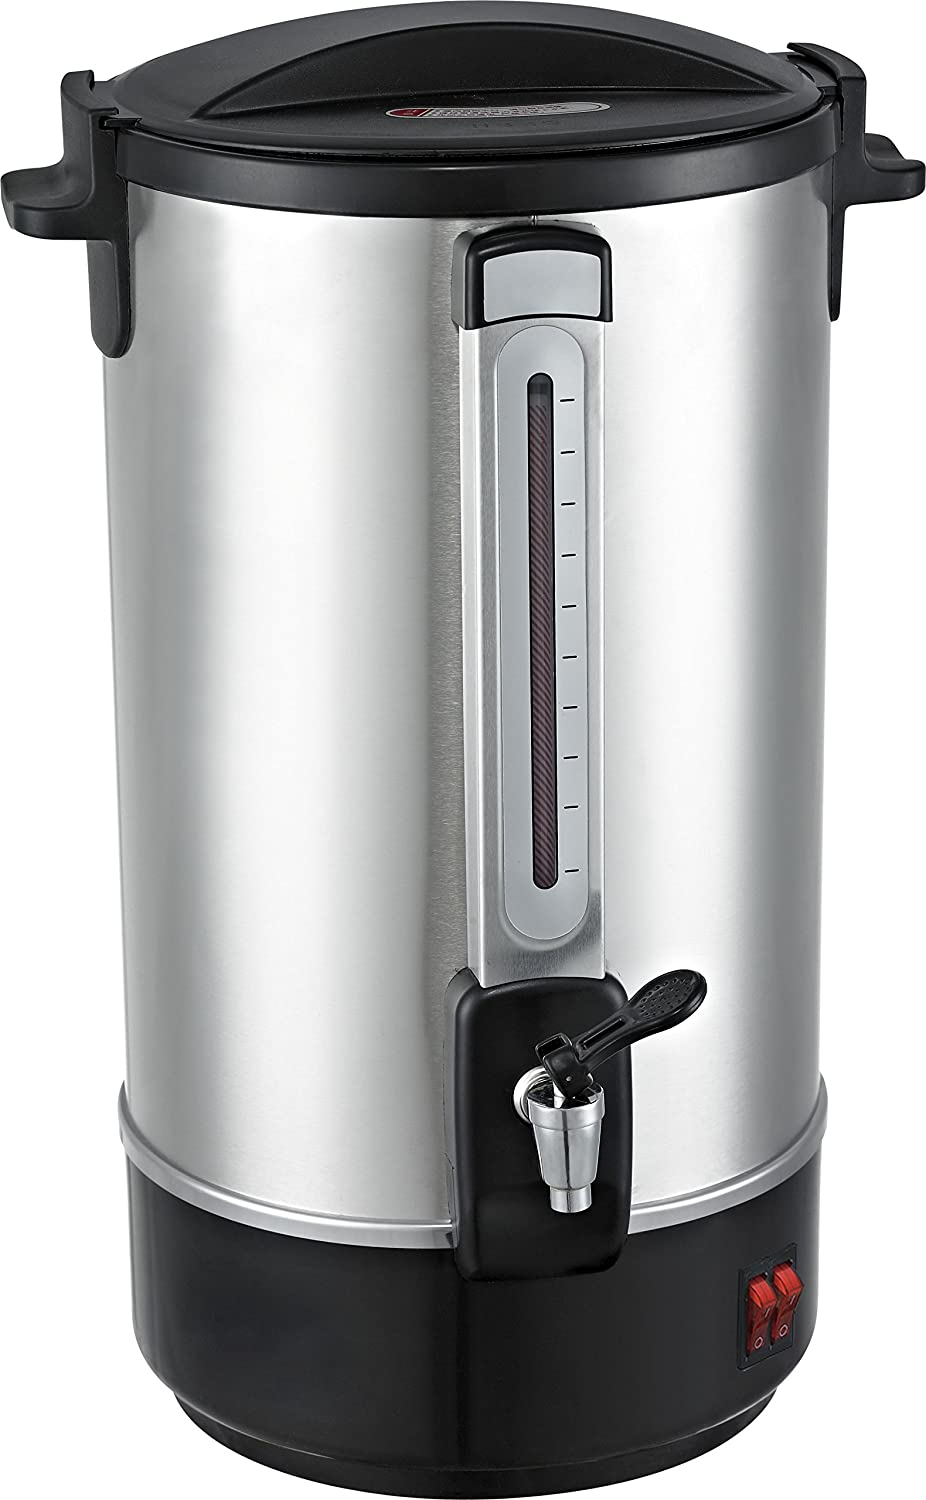 Classic Kitchen 28 Cup Stainless Steel Insulated Hot Water Urn - Water Boiler for Instant Hot Water with metal spout